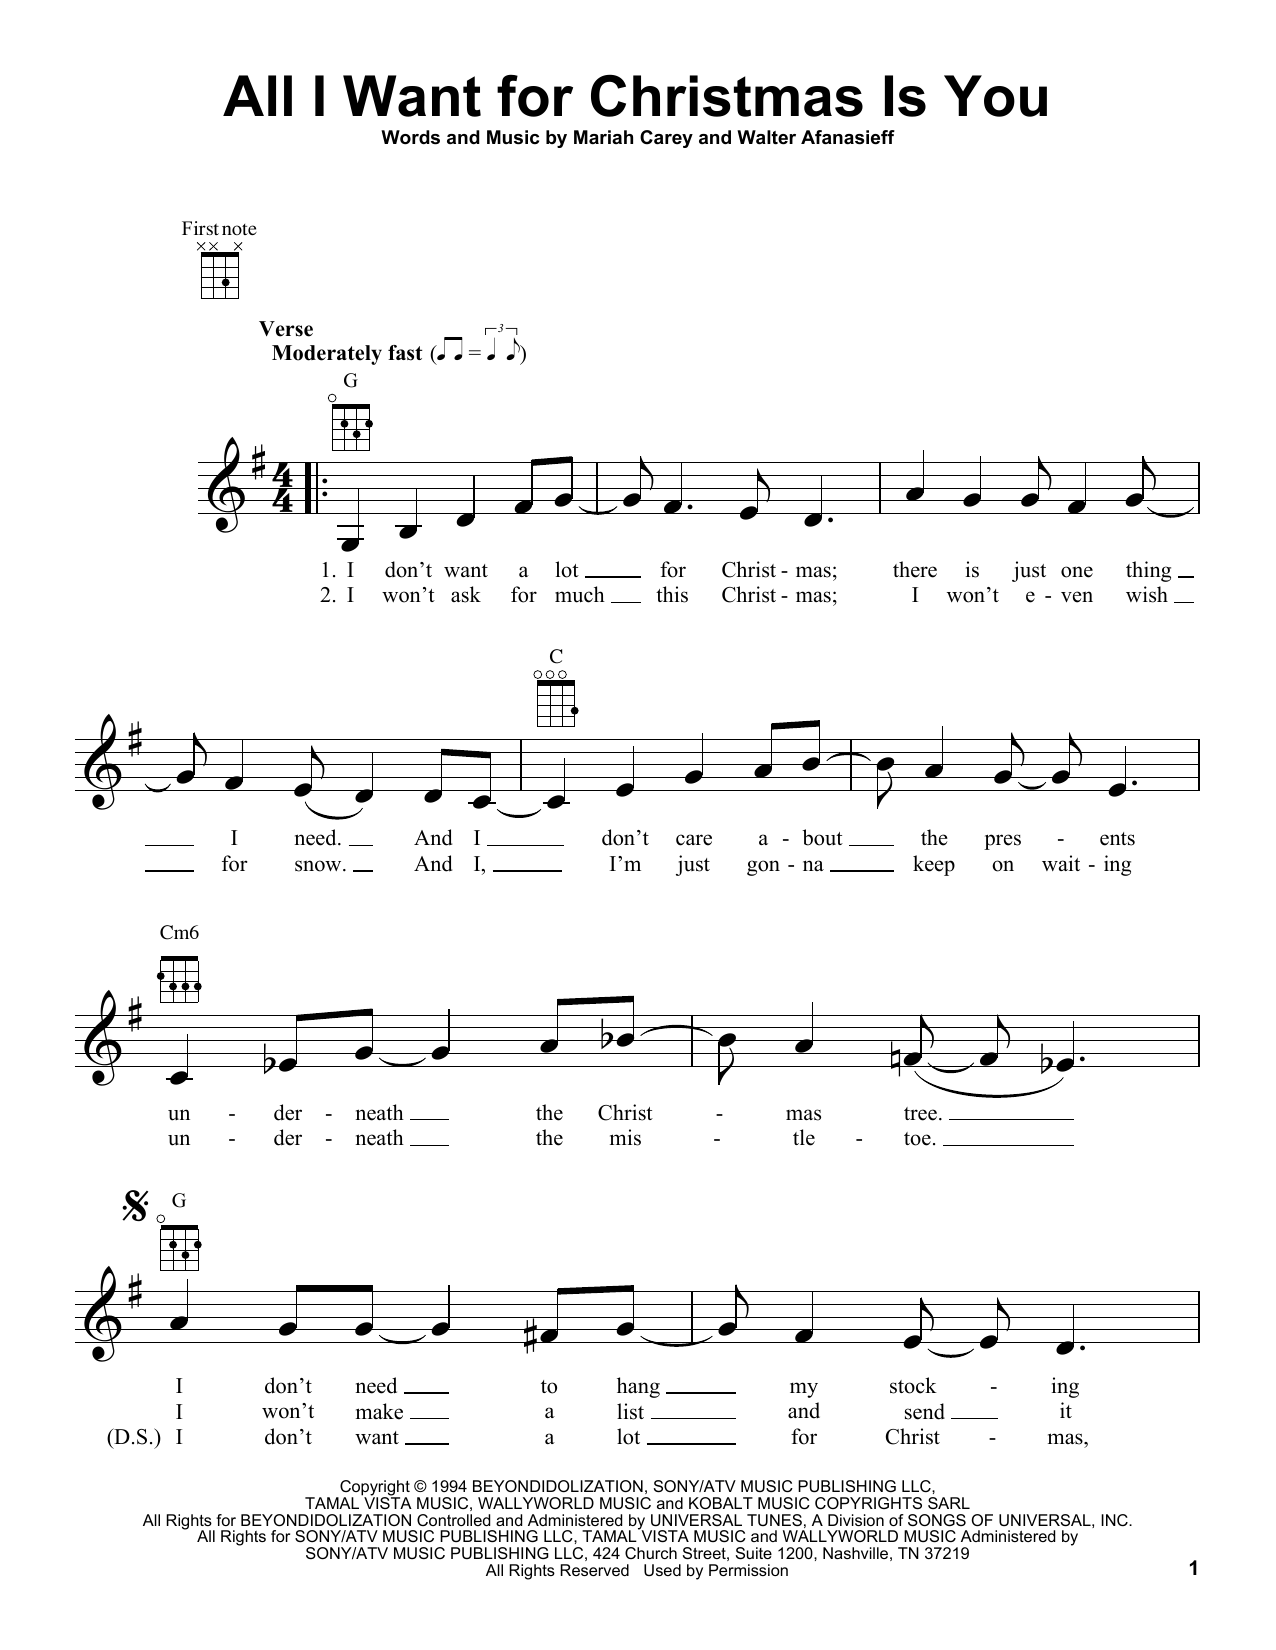 Mariah Carey 'All I Want For Christmas Is You' Sheet Music Notes, Chords |  Download Printable Ukulele - SKU: 187099